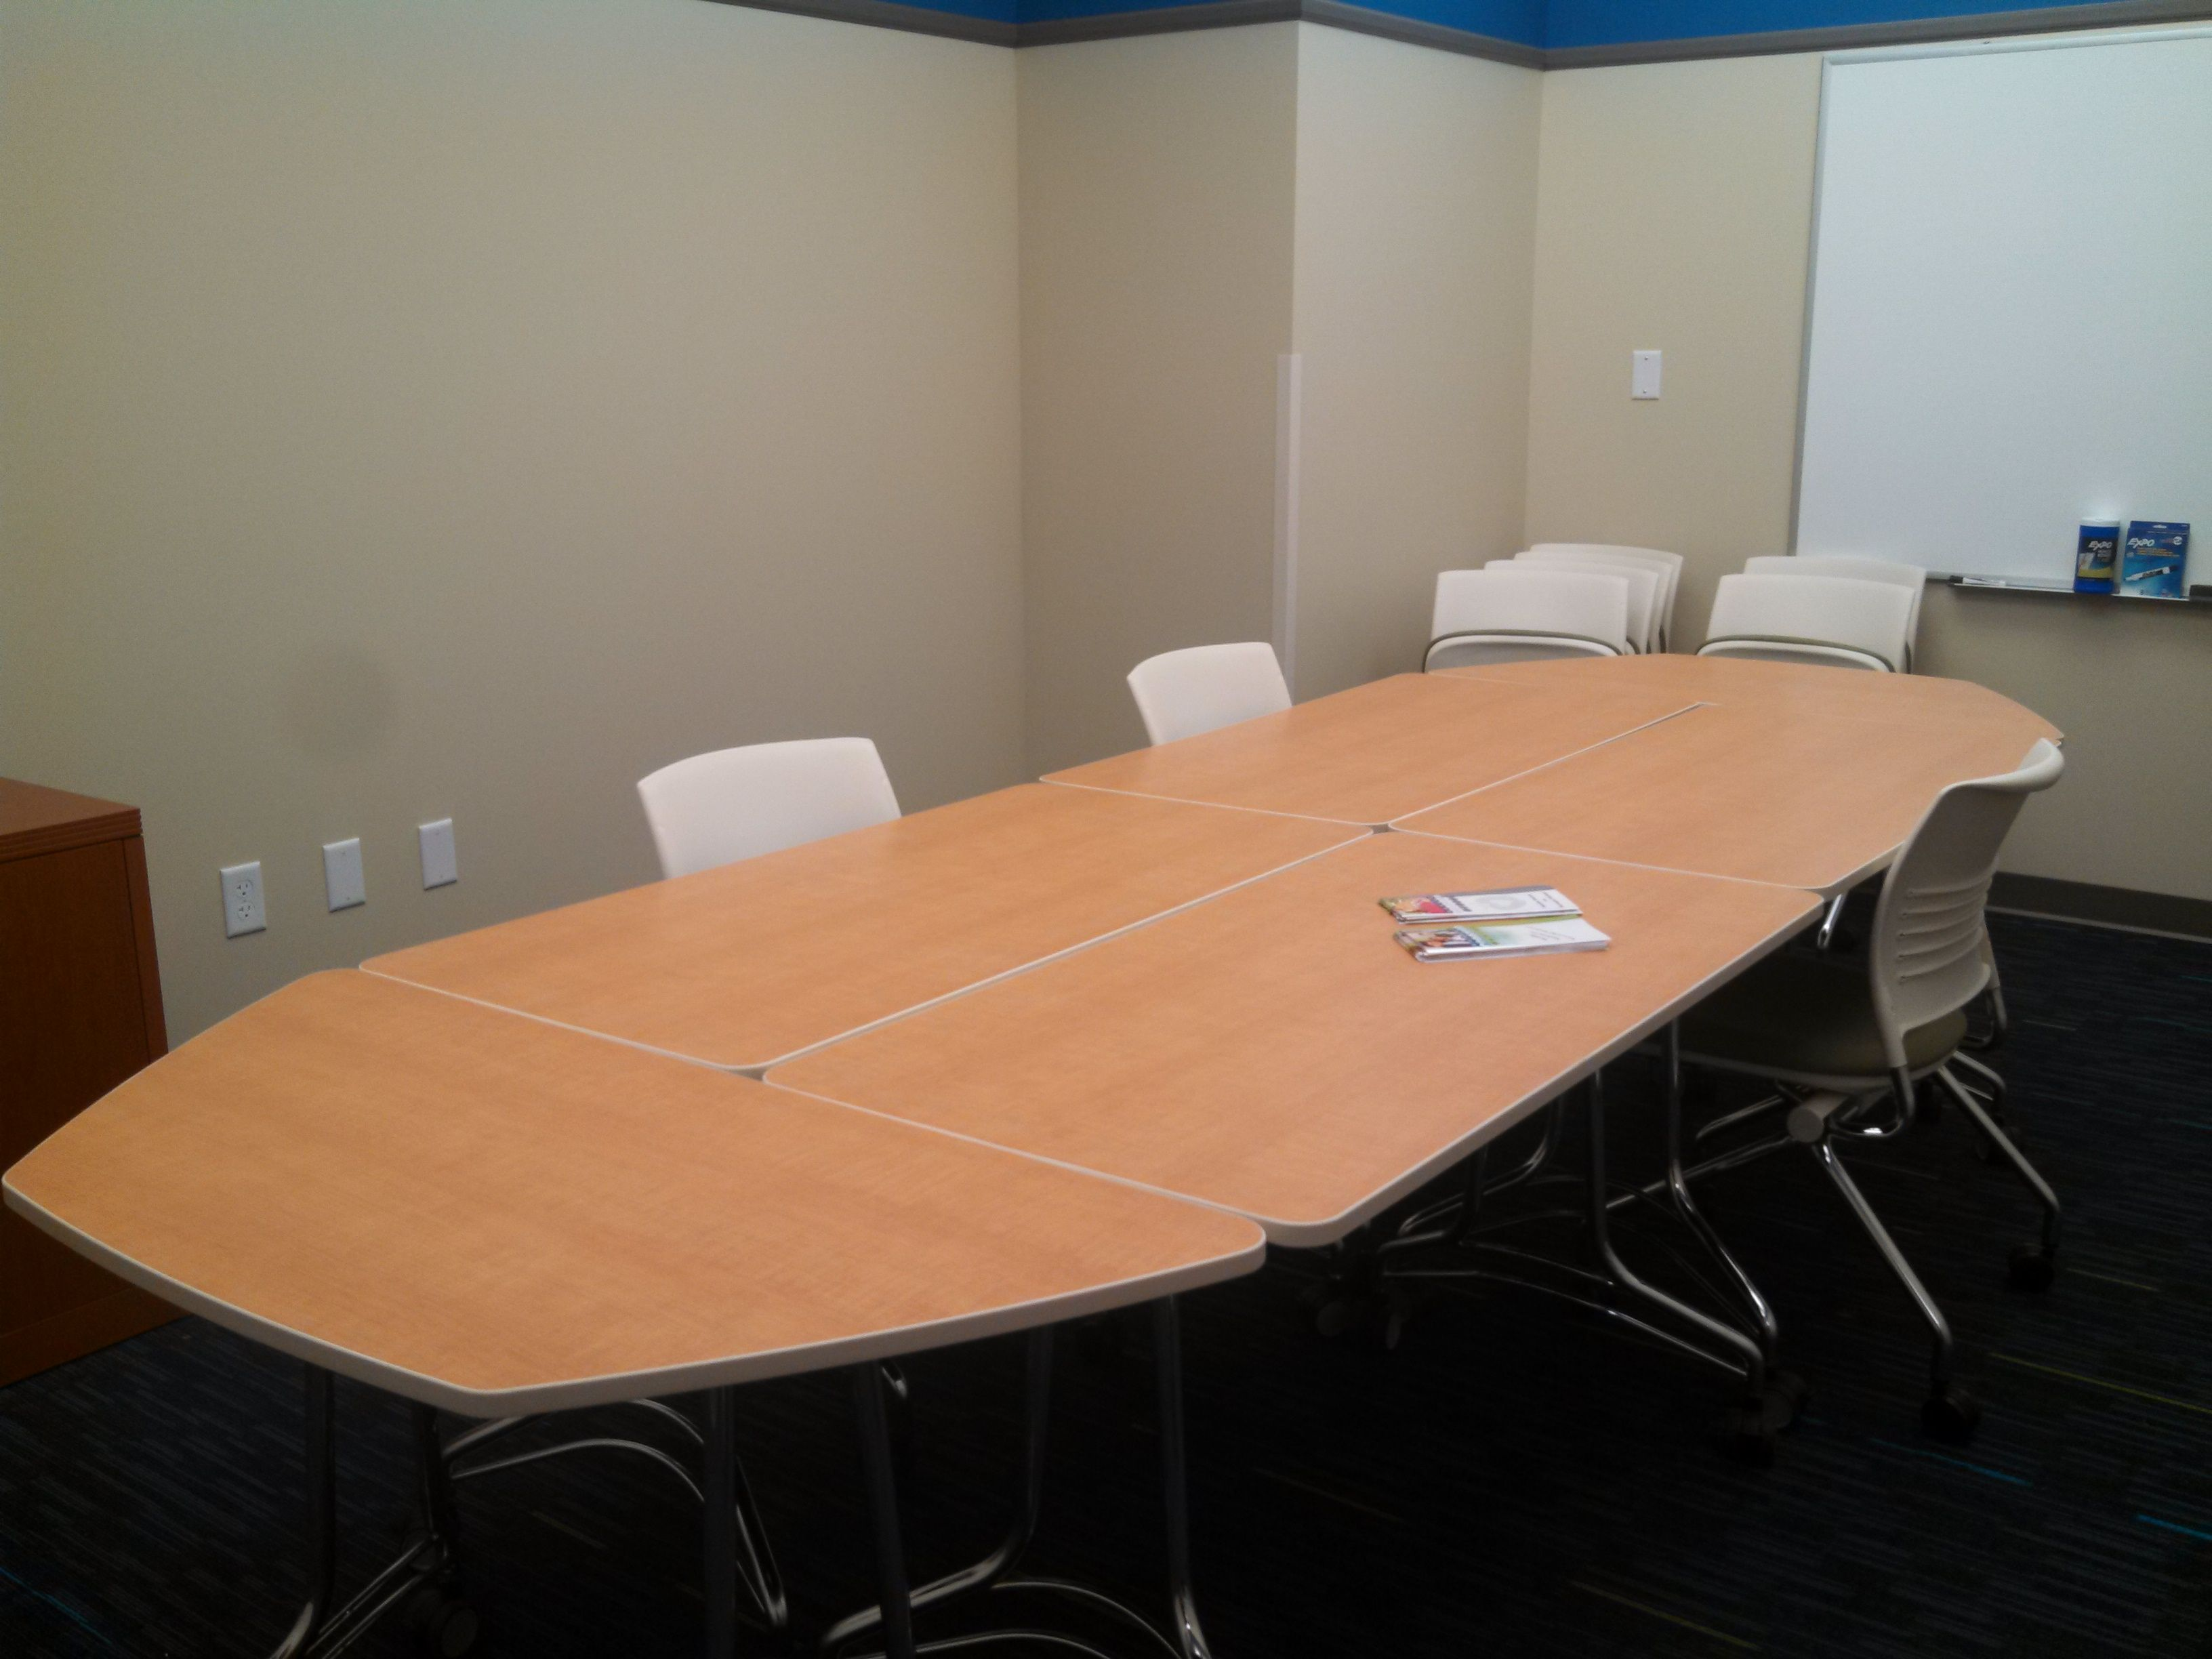 Enlite Tables Rectangular And Two Hexagon Make Up This - Hexagon conference table